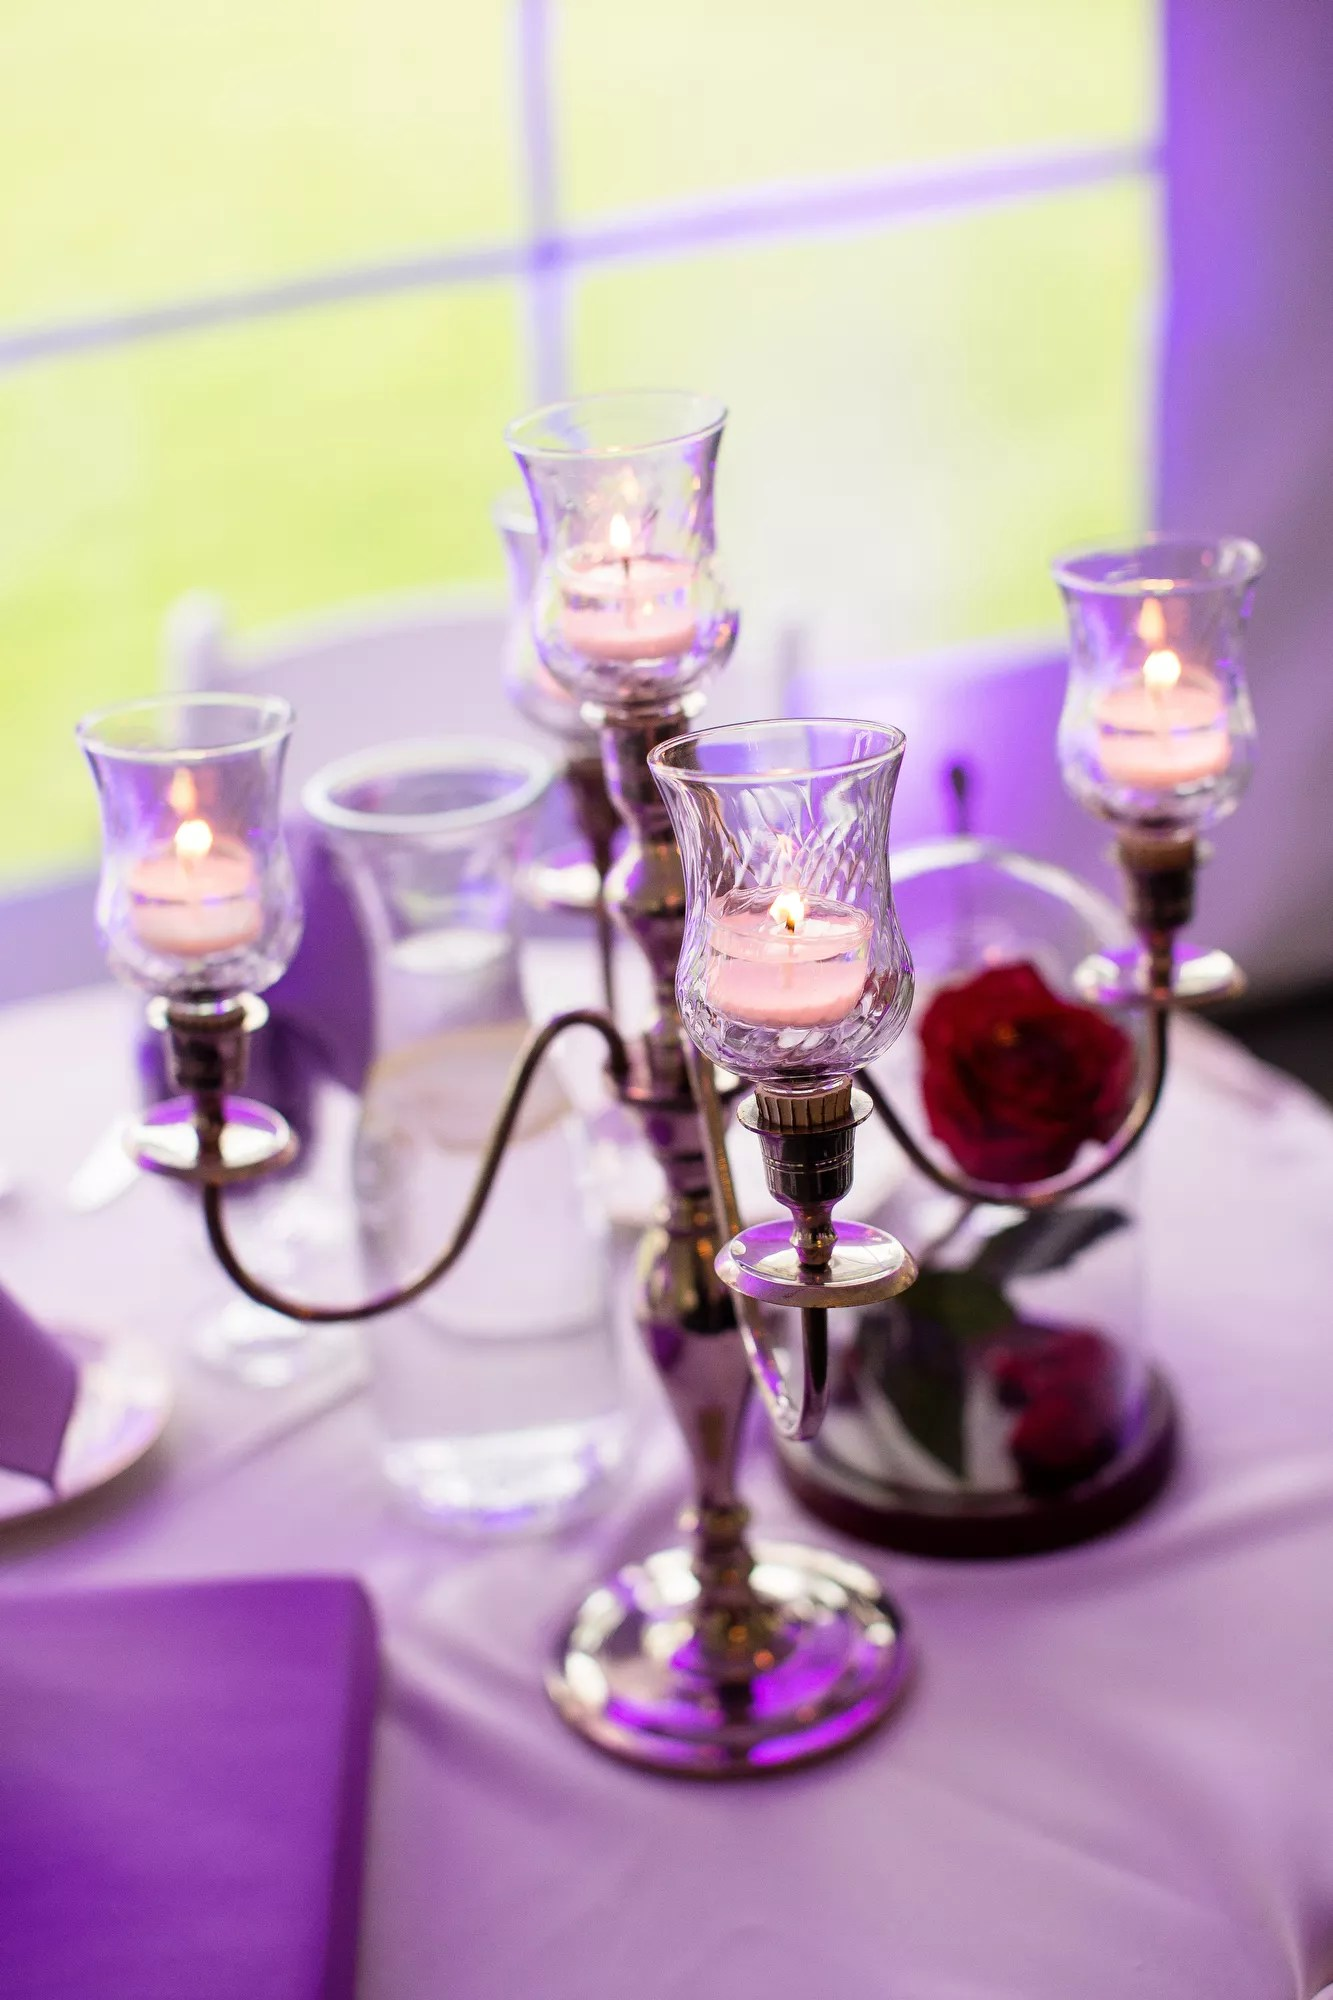 Beauty And The Beast Inspired Candelabras And Glass Domed